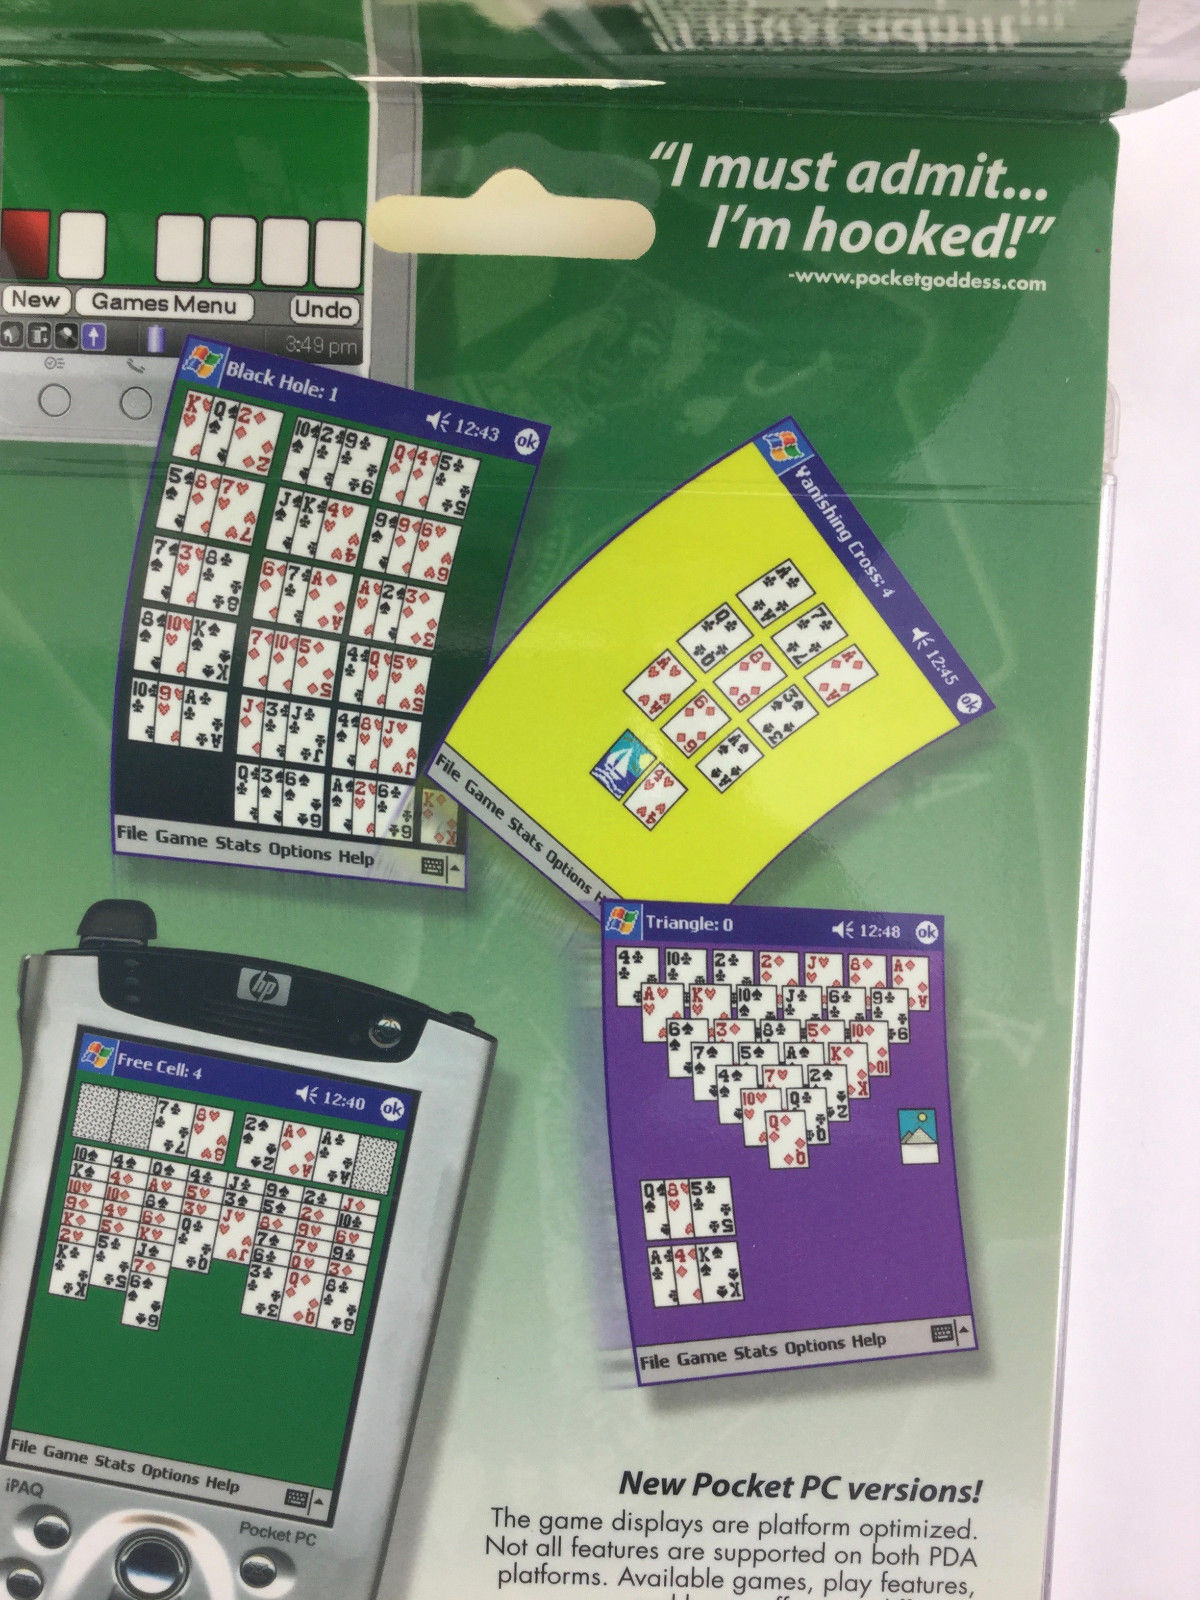 Pocket PC Solitaire Game Free Cell Pyramid Palm OS and Windows Mobile